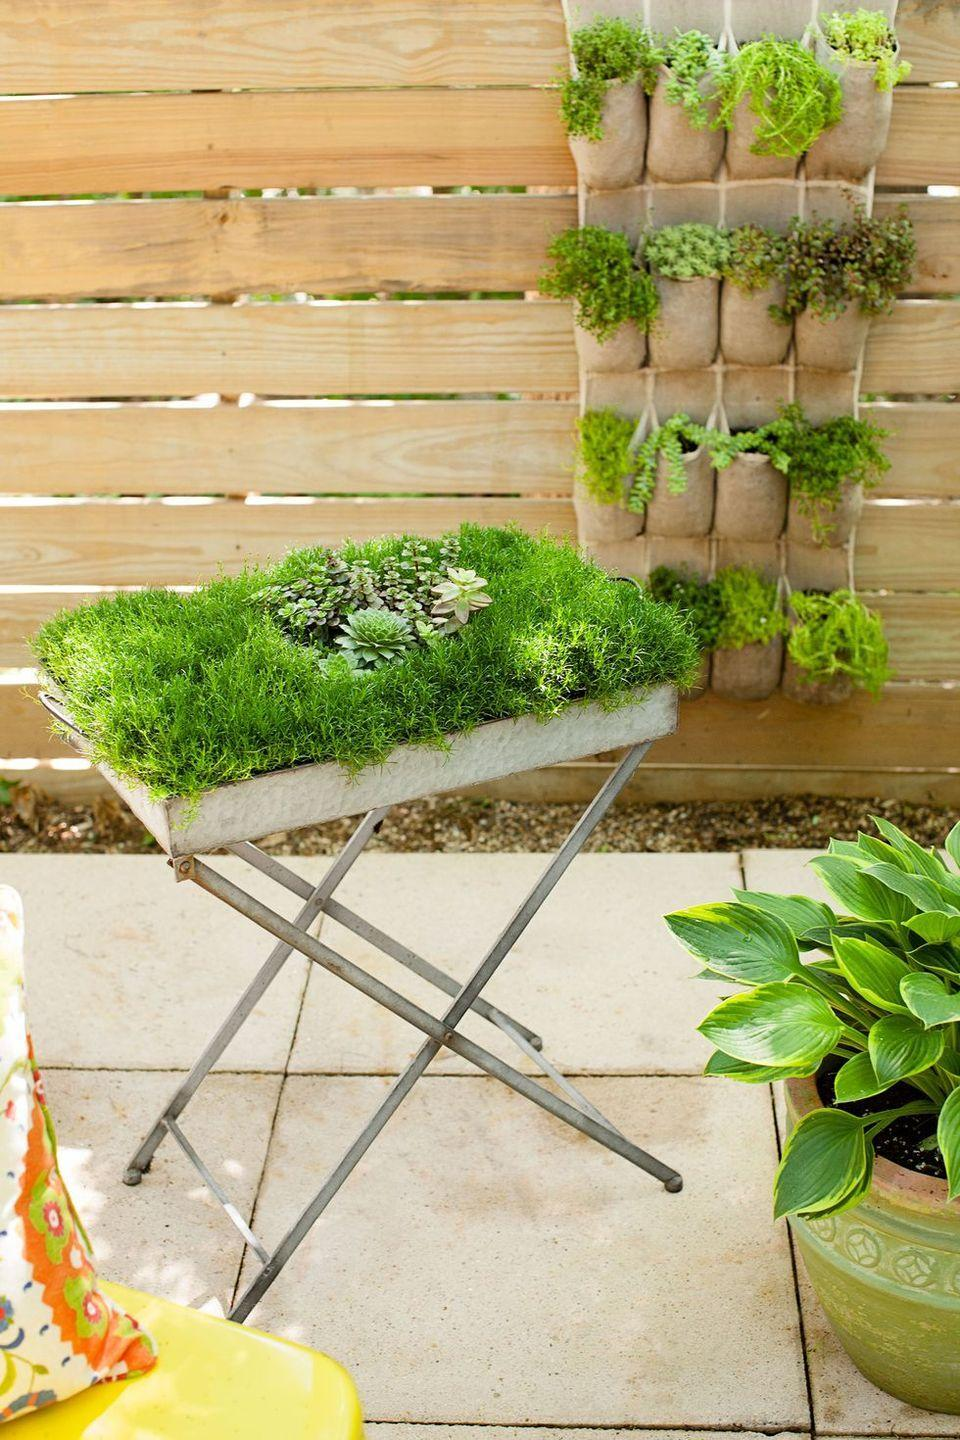 <p>Metal tables aren't just for serving drinks on your patio. Give yours an entirely new look by making it a garden bed, which is great for Irish moss and succulents.<br></p>